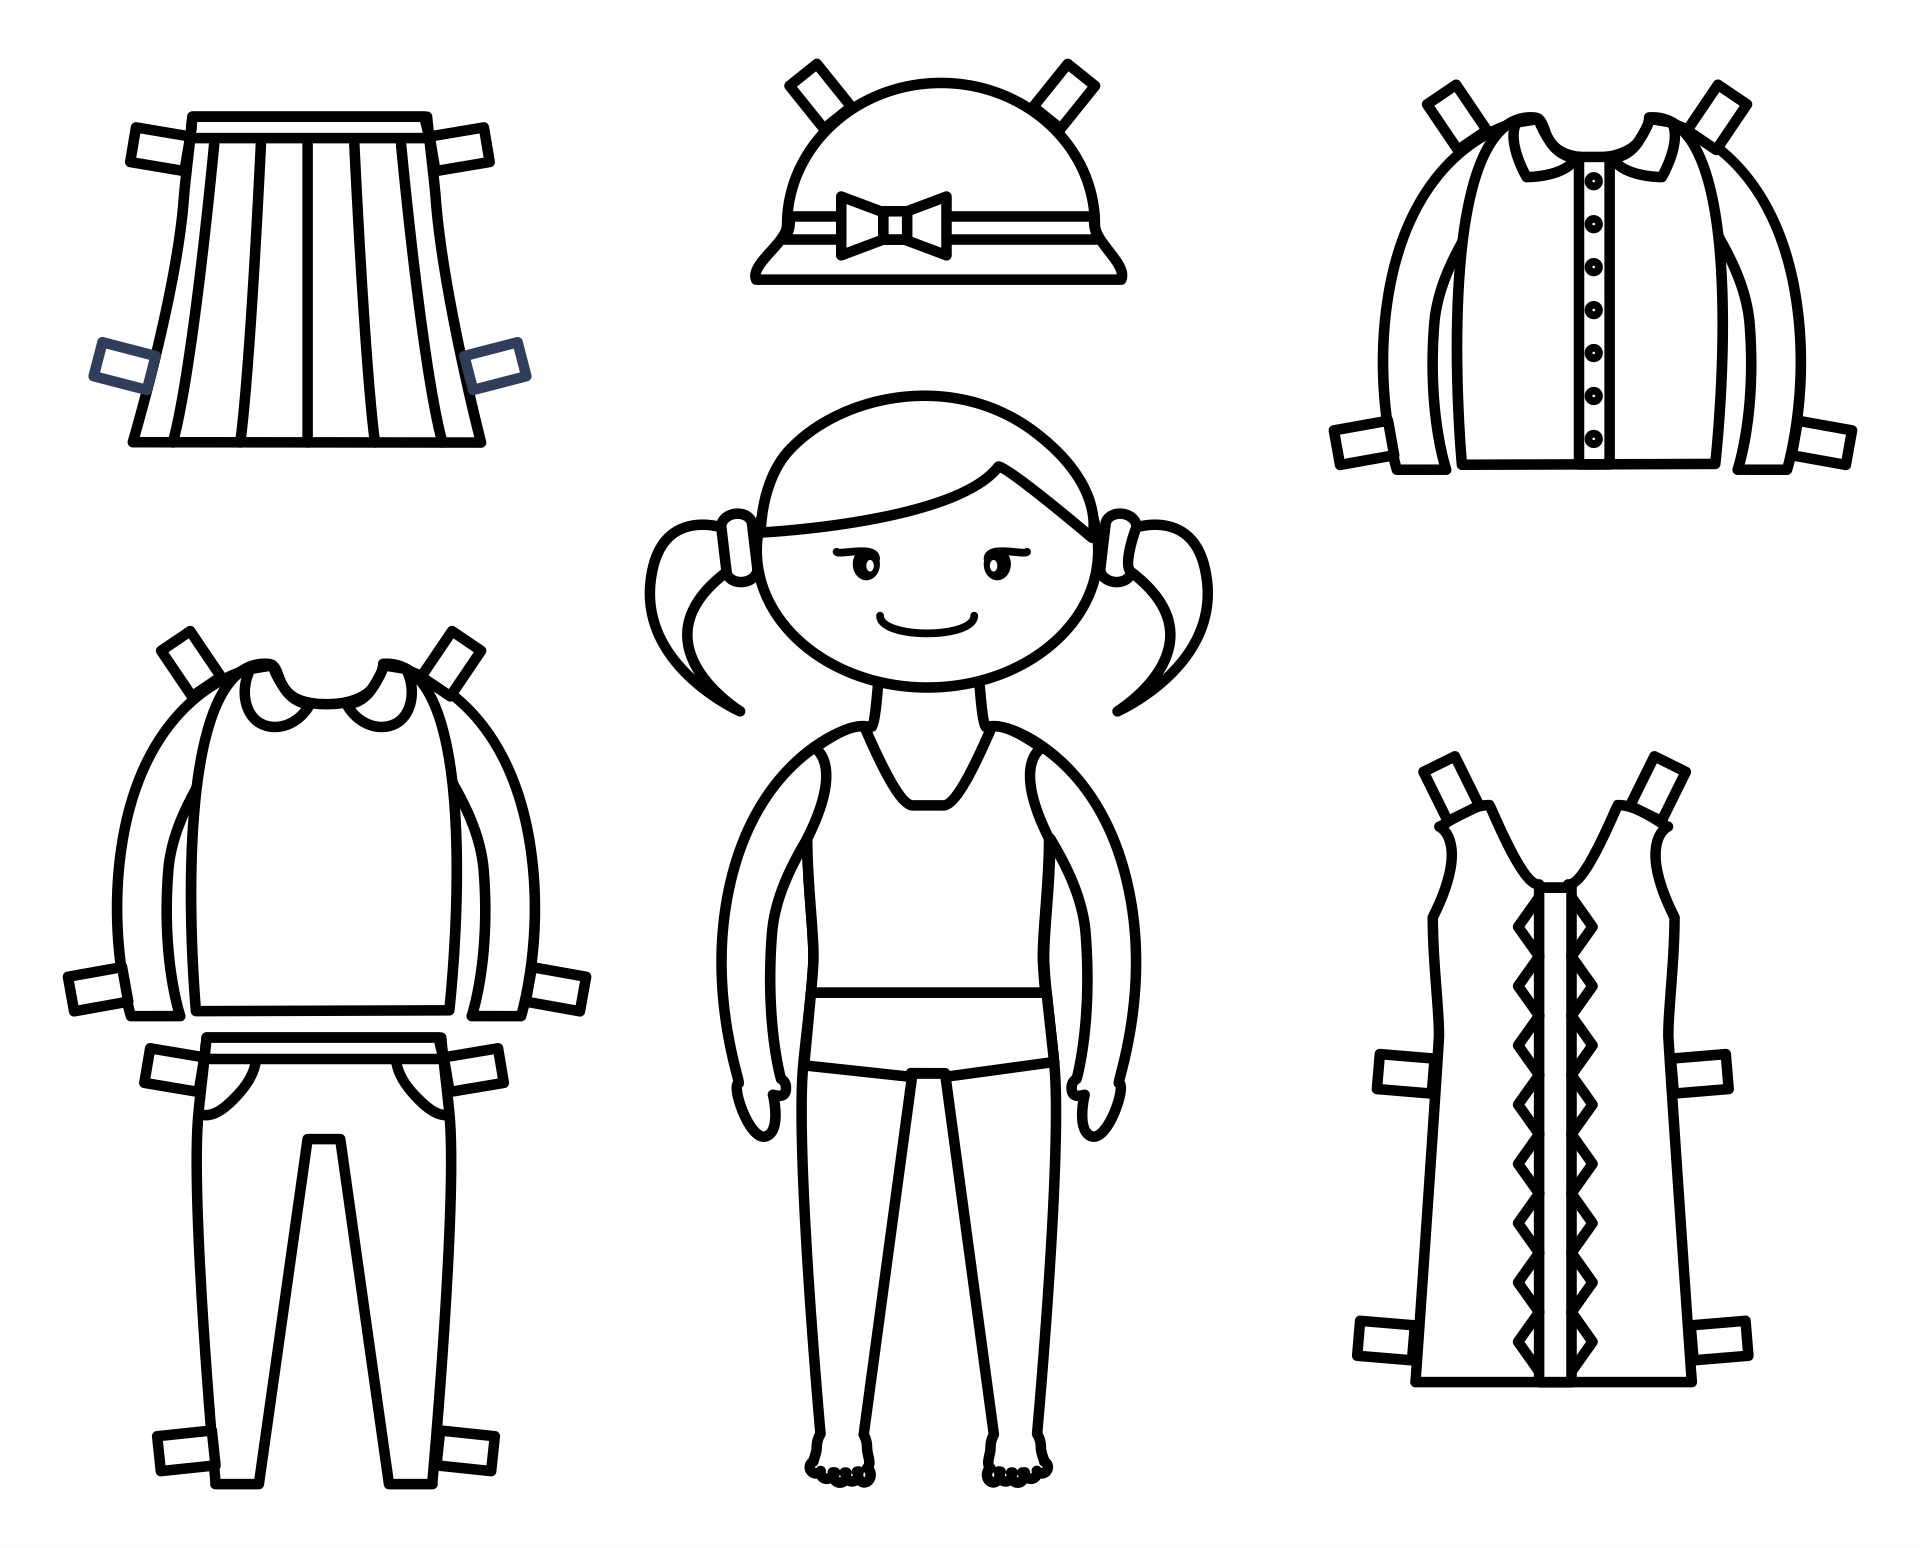 Cut Out Paper Dolls Paper Dolls Print Outs Coloring Pages Cut Out ... | 1200x1500